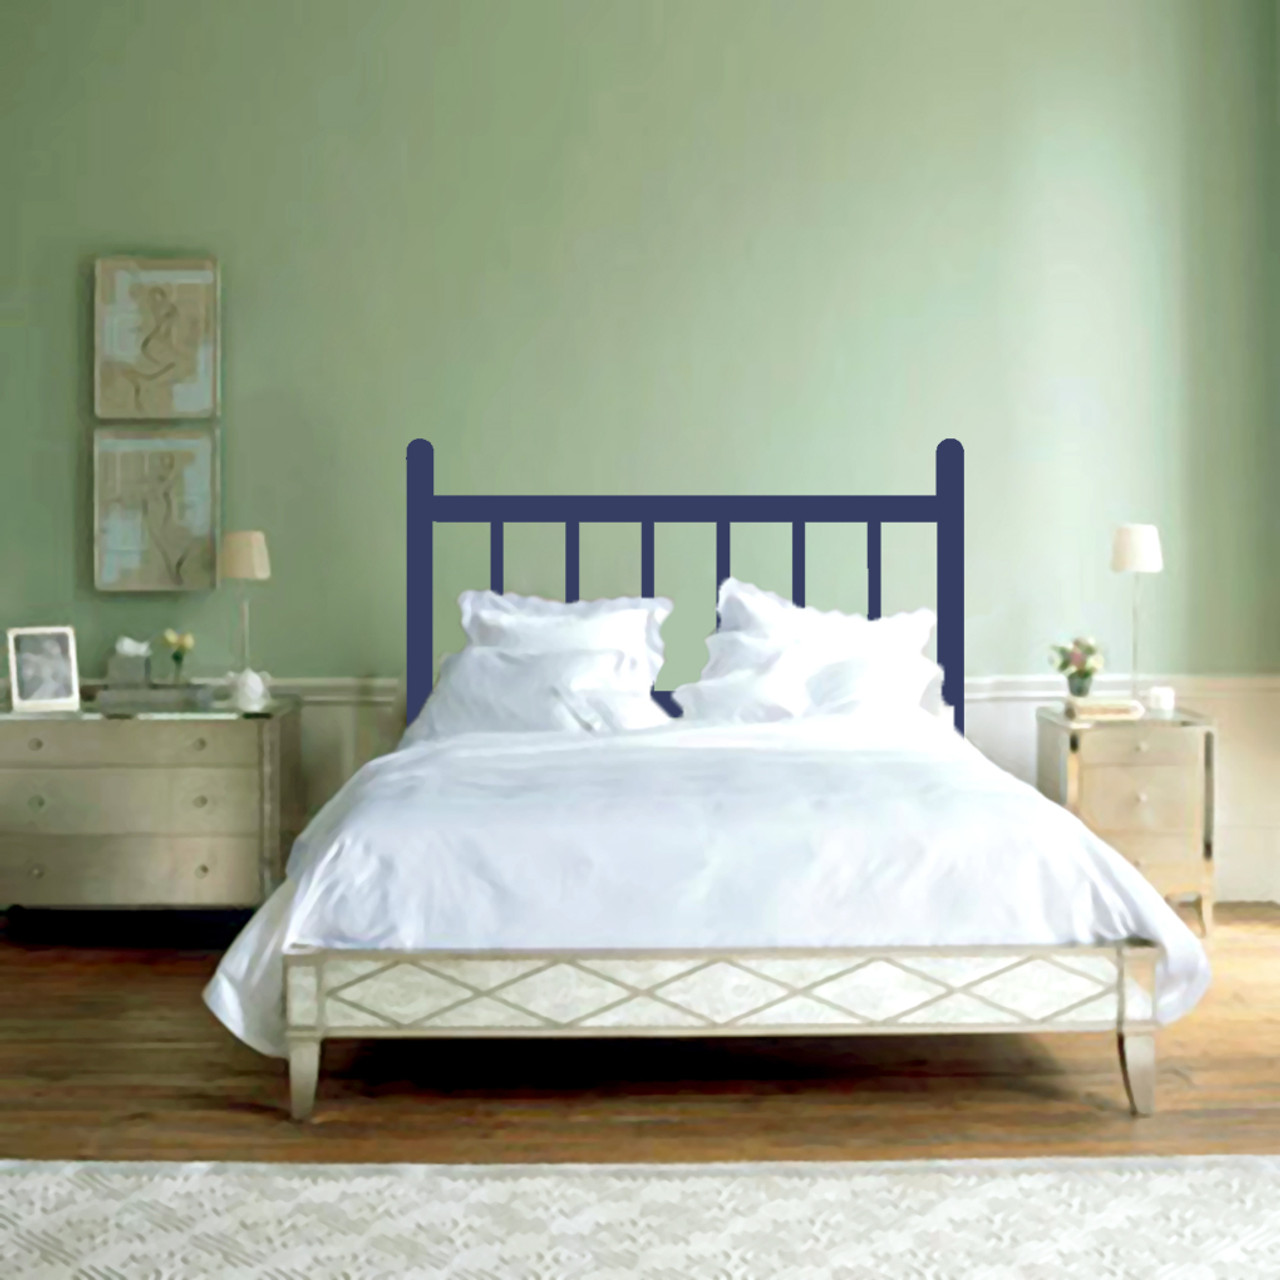 Traditional Headboard Bedroom Wall Decals And Stickers